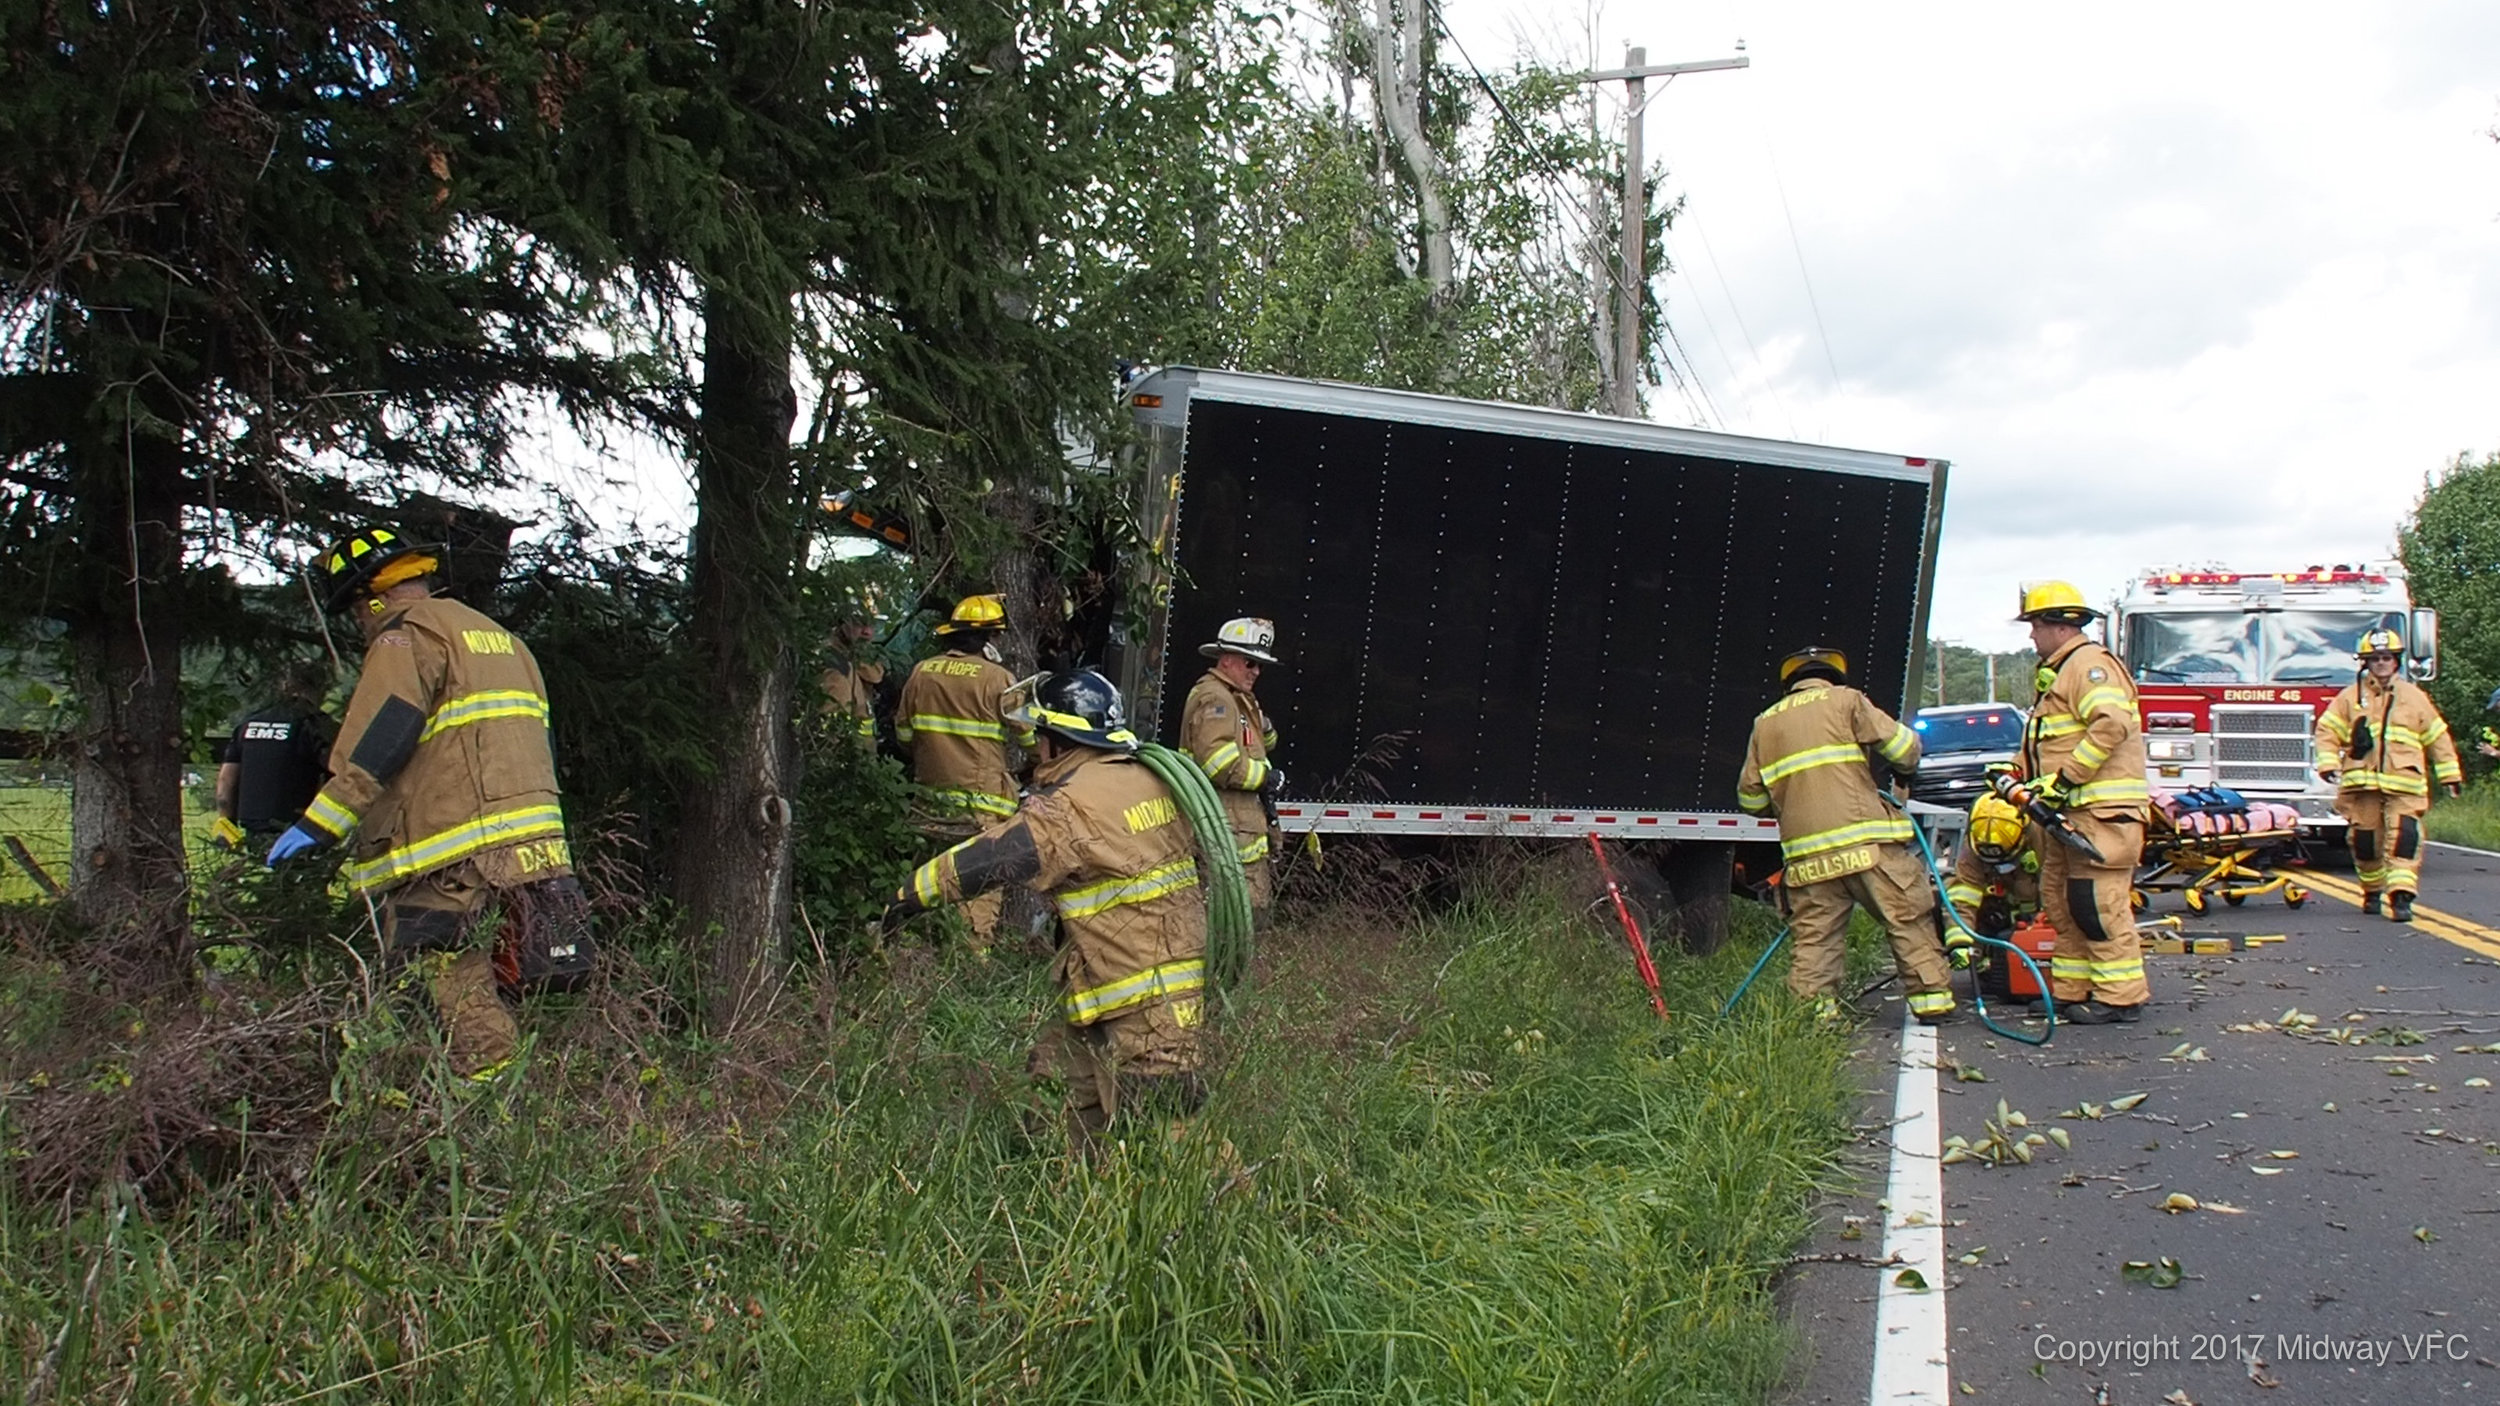 2017.09.08 at 2:22 PM - Fire companies from New Hope, Hunterdon County,Upper Makefield, and Lingohocken along with Midway Volunteer Fire Company successfully extricated the driver of a panel truck involved in a single vehicle accident on Route 232. Once extricated, the driver was taken to a local hospital by Central Bucks EMS for treatment. The cause of the accident is under investigation. None of the first responders were injured.